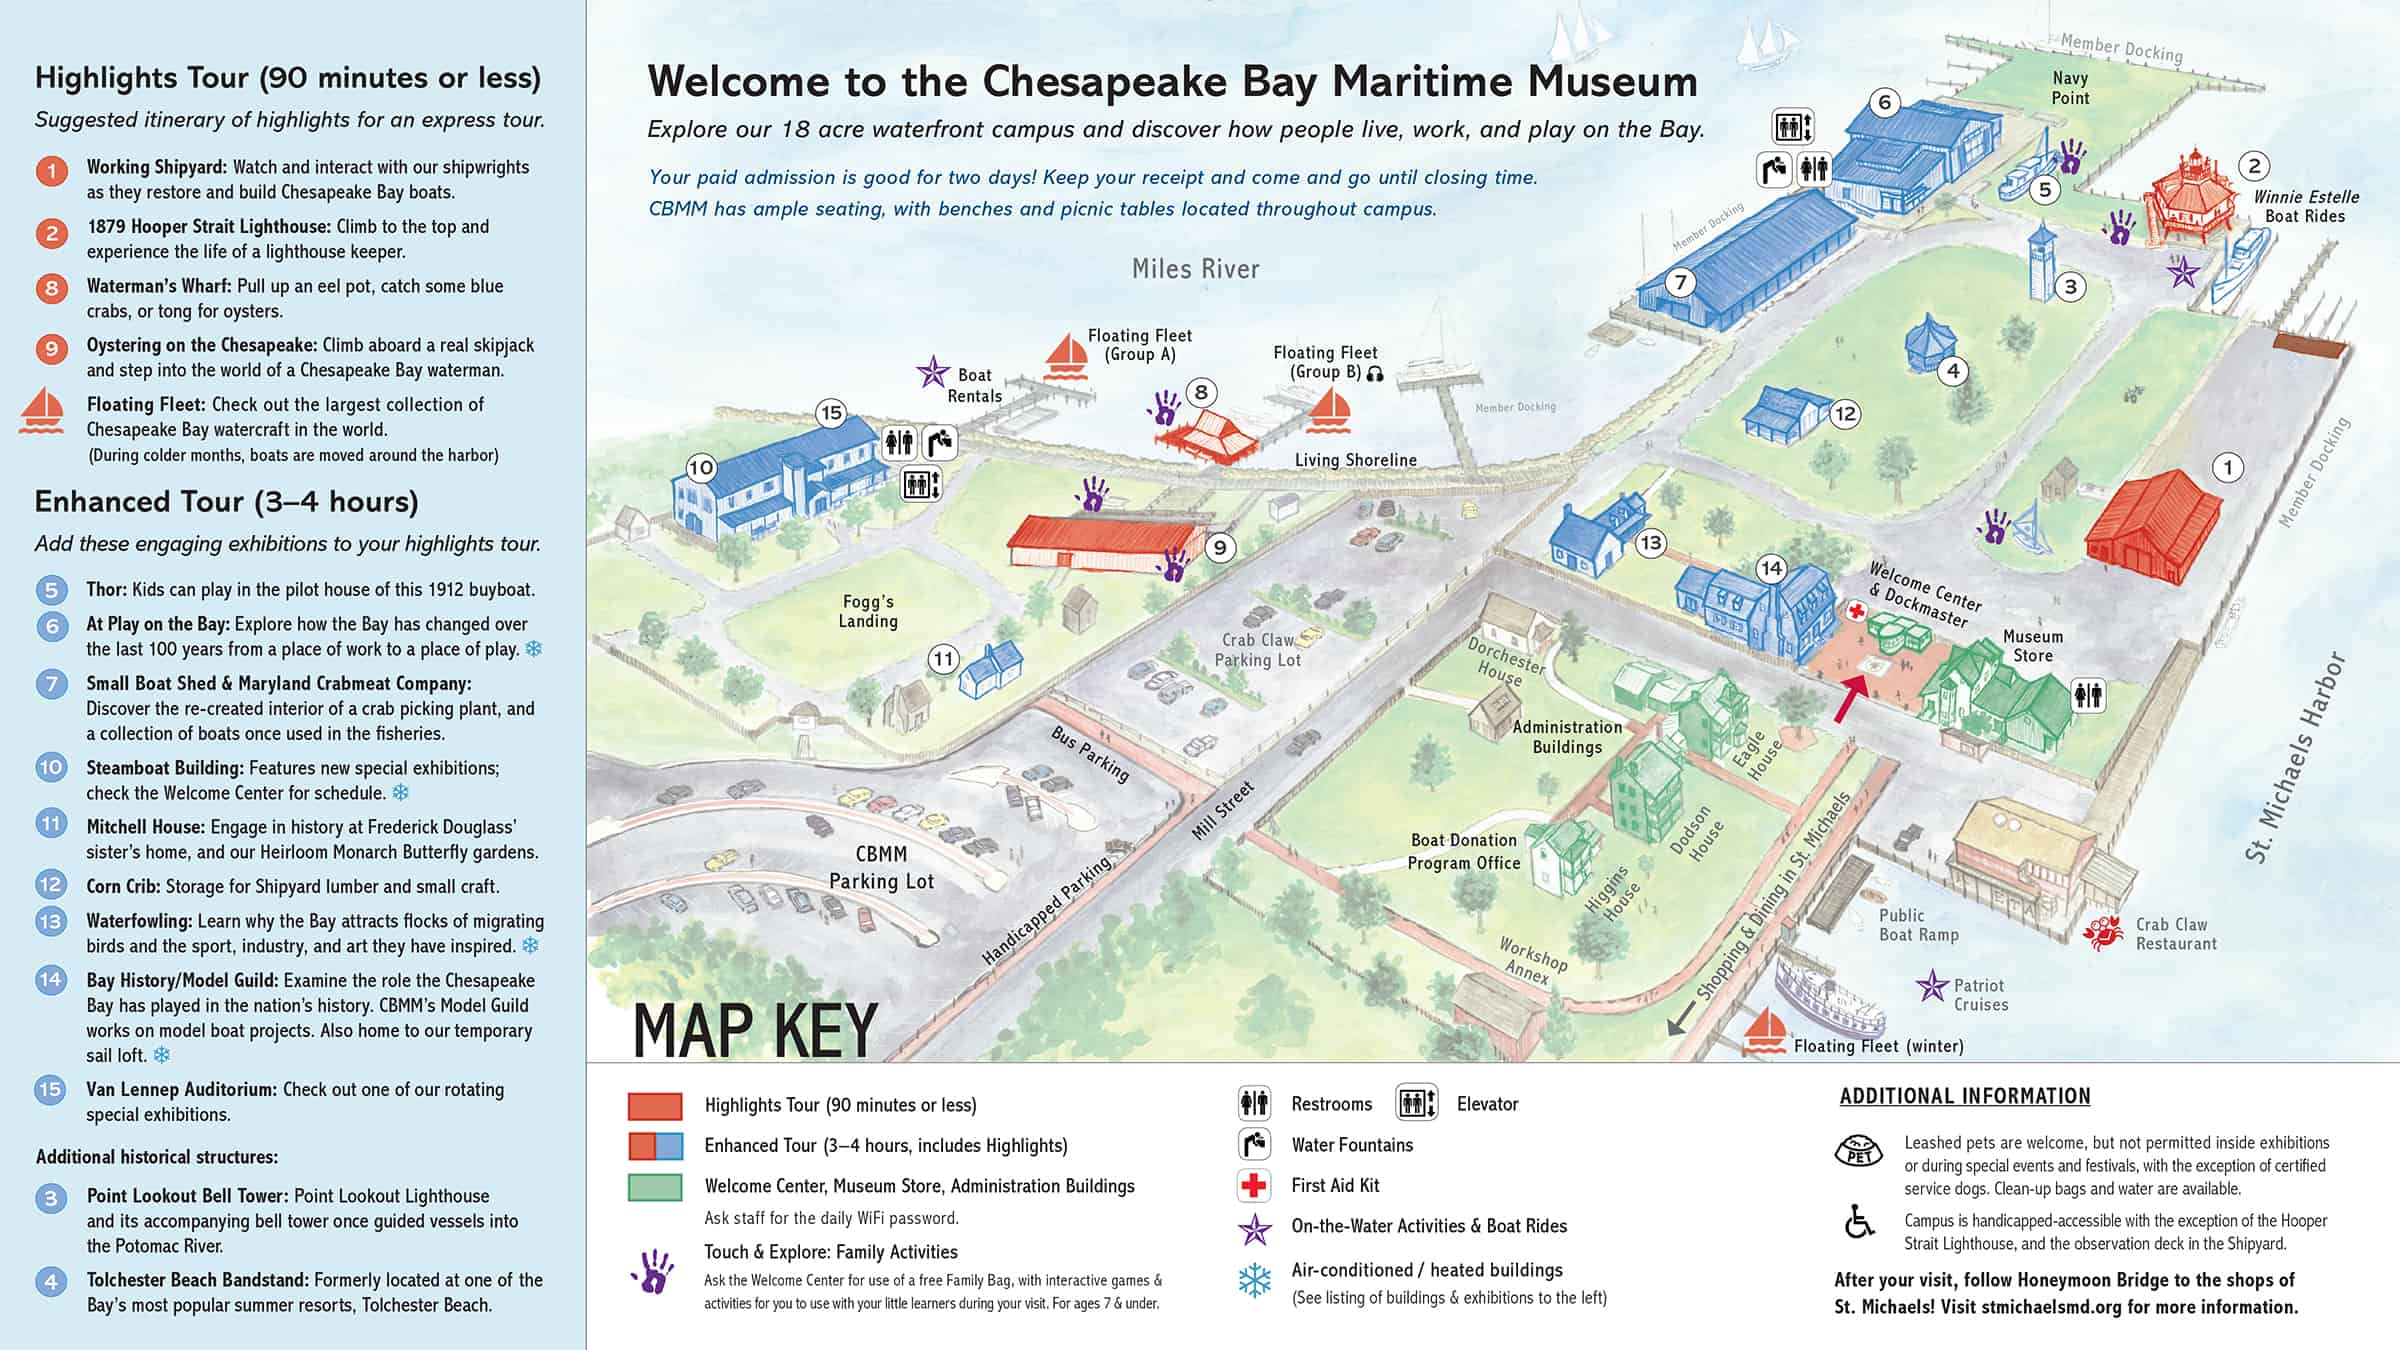 Mission Bay Campus Map.Campus Map Chesapeake Bay Maritime Museum